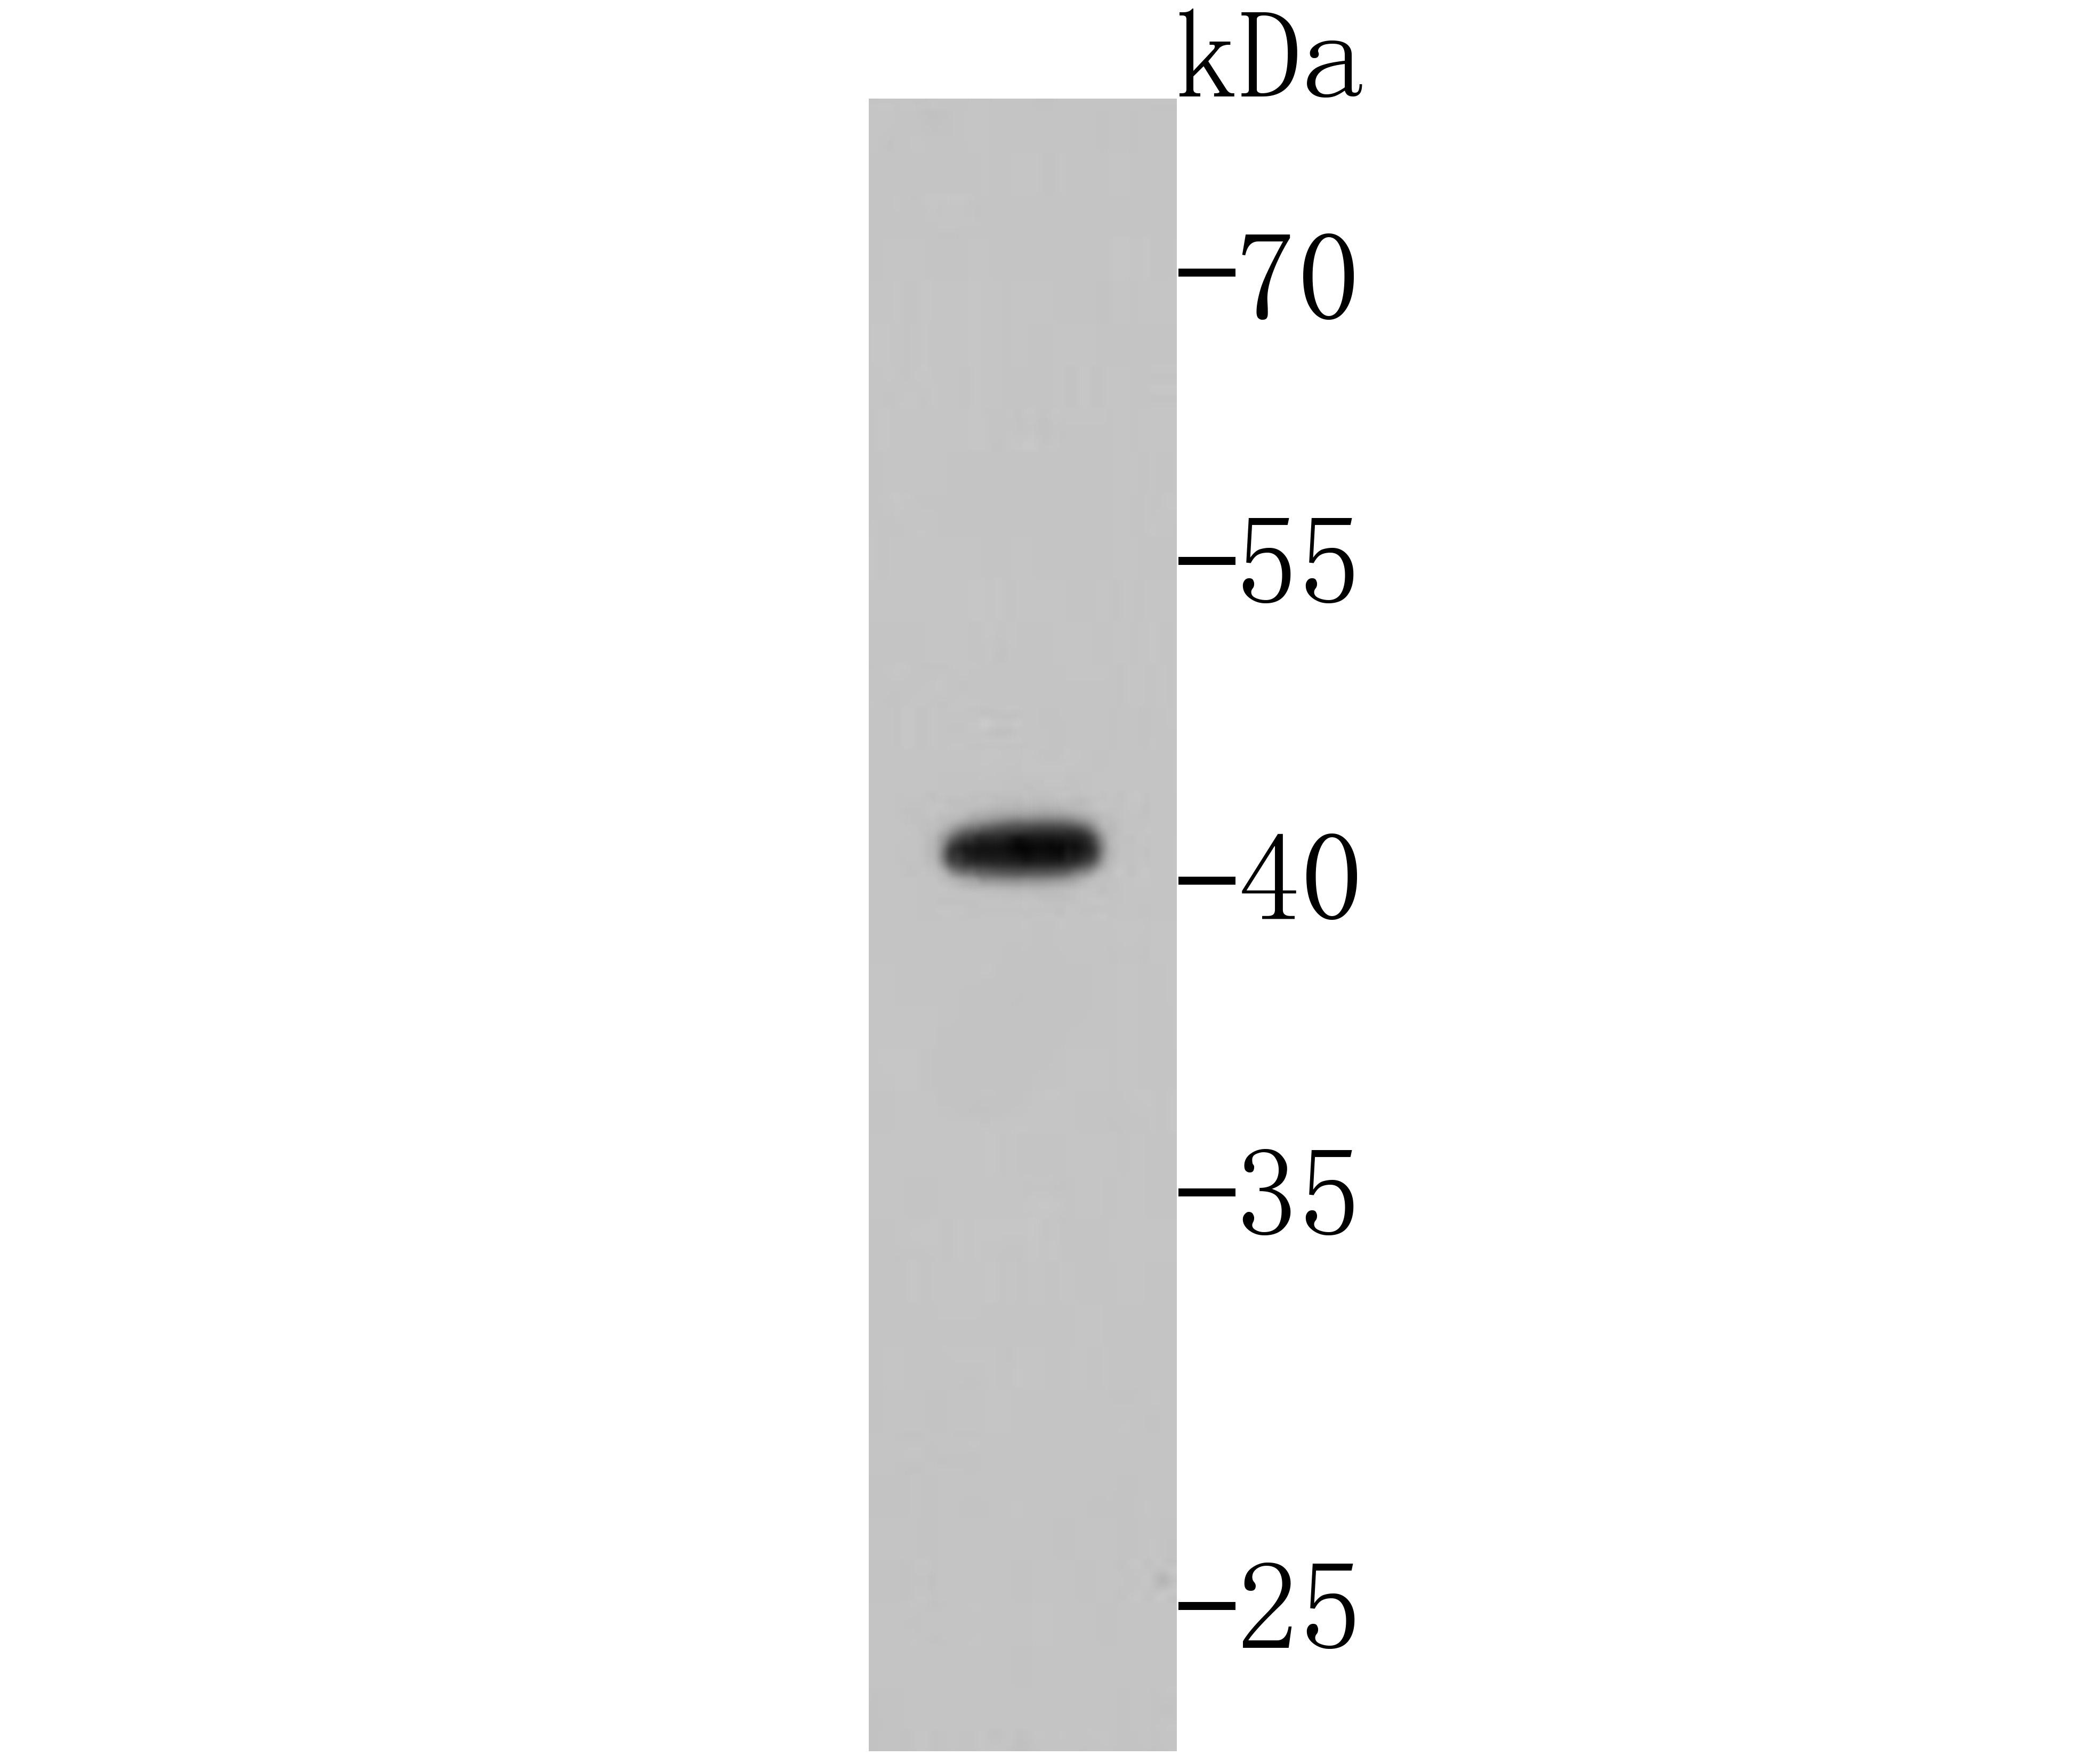 Western blot analysis of p53 on zebrafish tissue lysates. Proteins were transferred to a PVDF membrane and blocked with 5% BSA in PBS for 1 hour at room temperature. The primary antibody (ET1601-13, 1/500) was used in 5% BSA at room temperature for 2 hours. Goat Anti-Rabbit IgG - HRP Secondary Antibody (HA1001) at 1:5,000 dilution was used for 1 hour at room temperature.